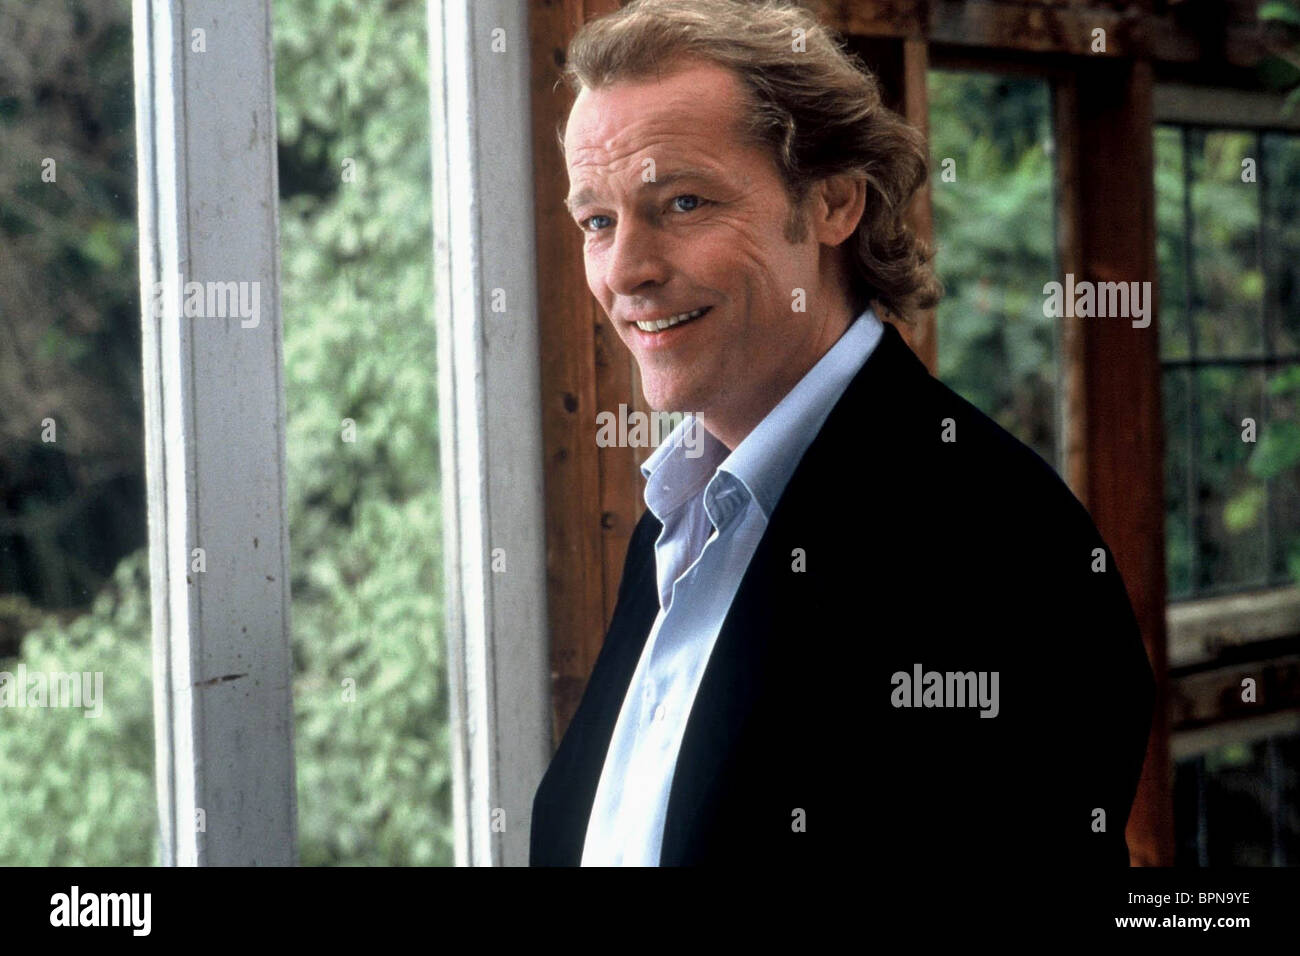 IAIN GLEN TARA ROAD (2005) - Stock Image